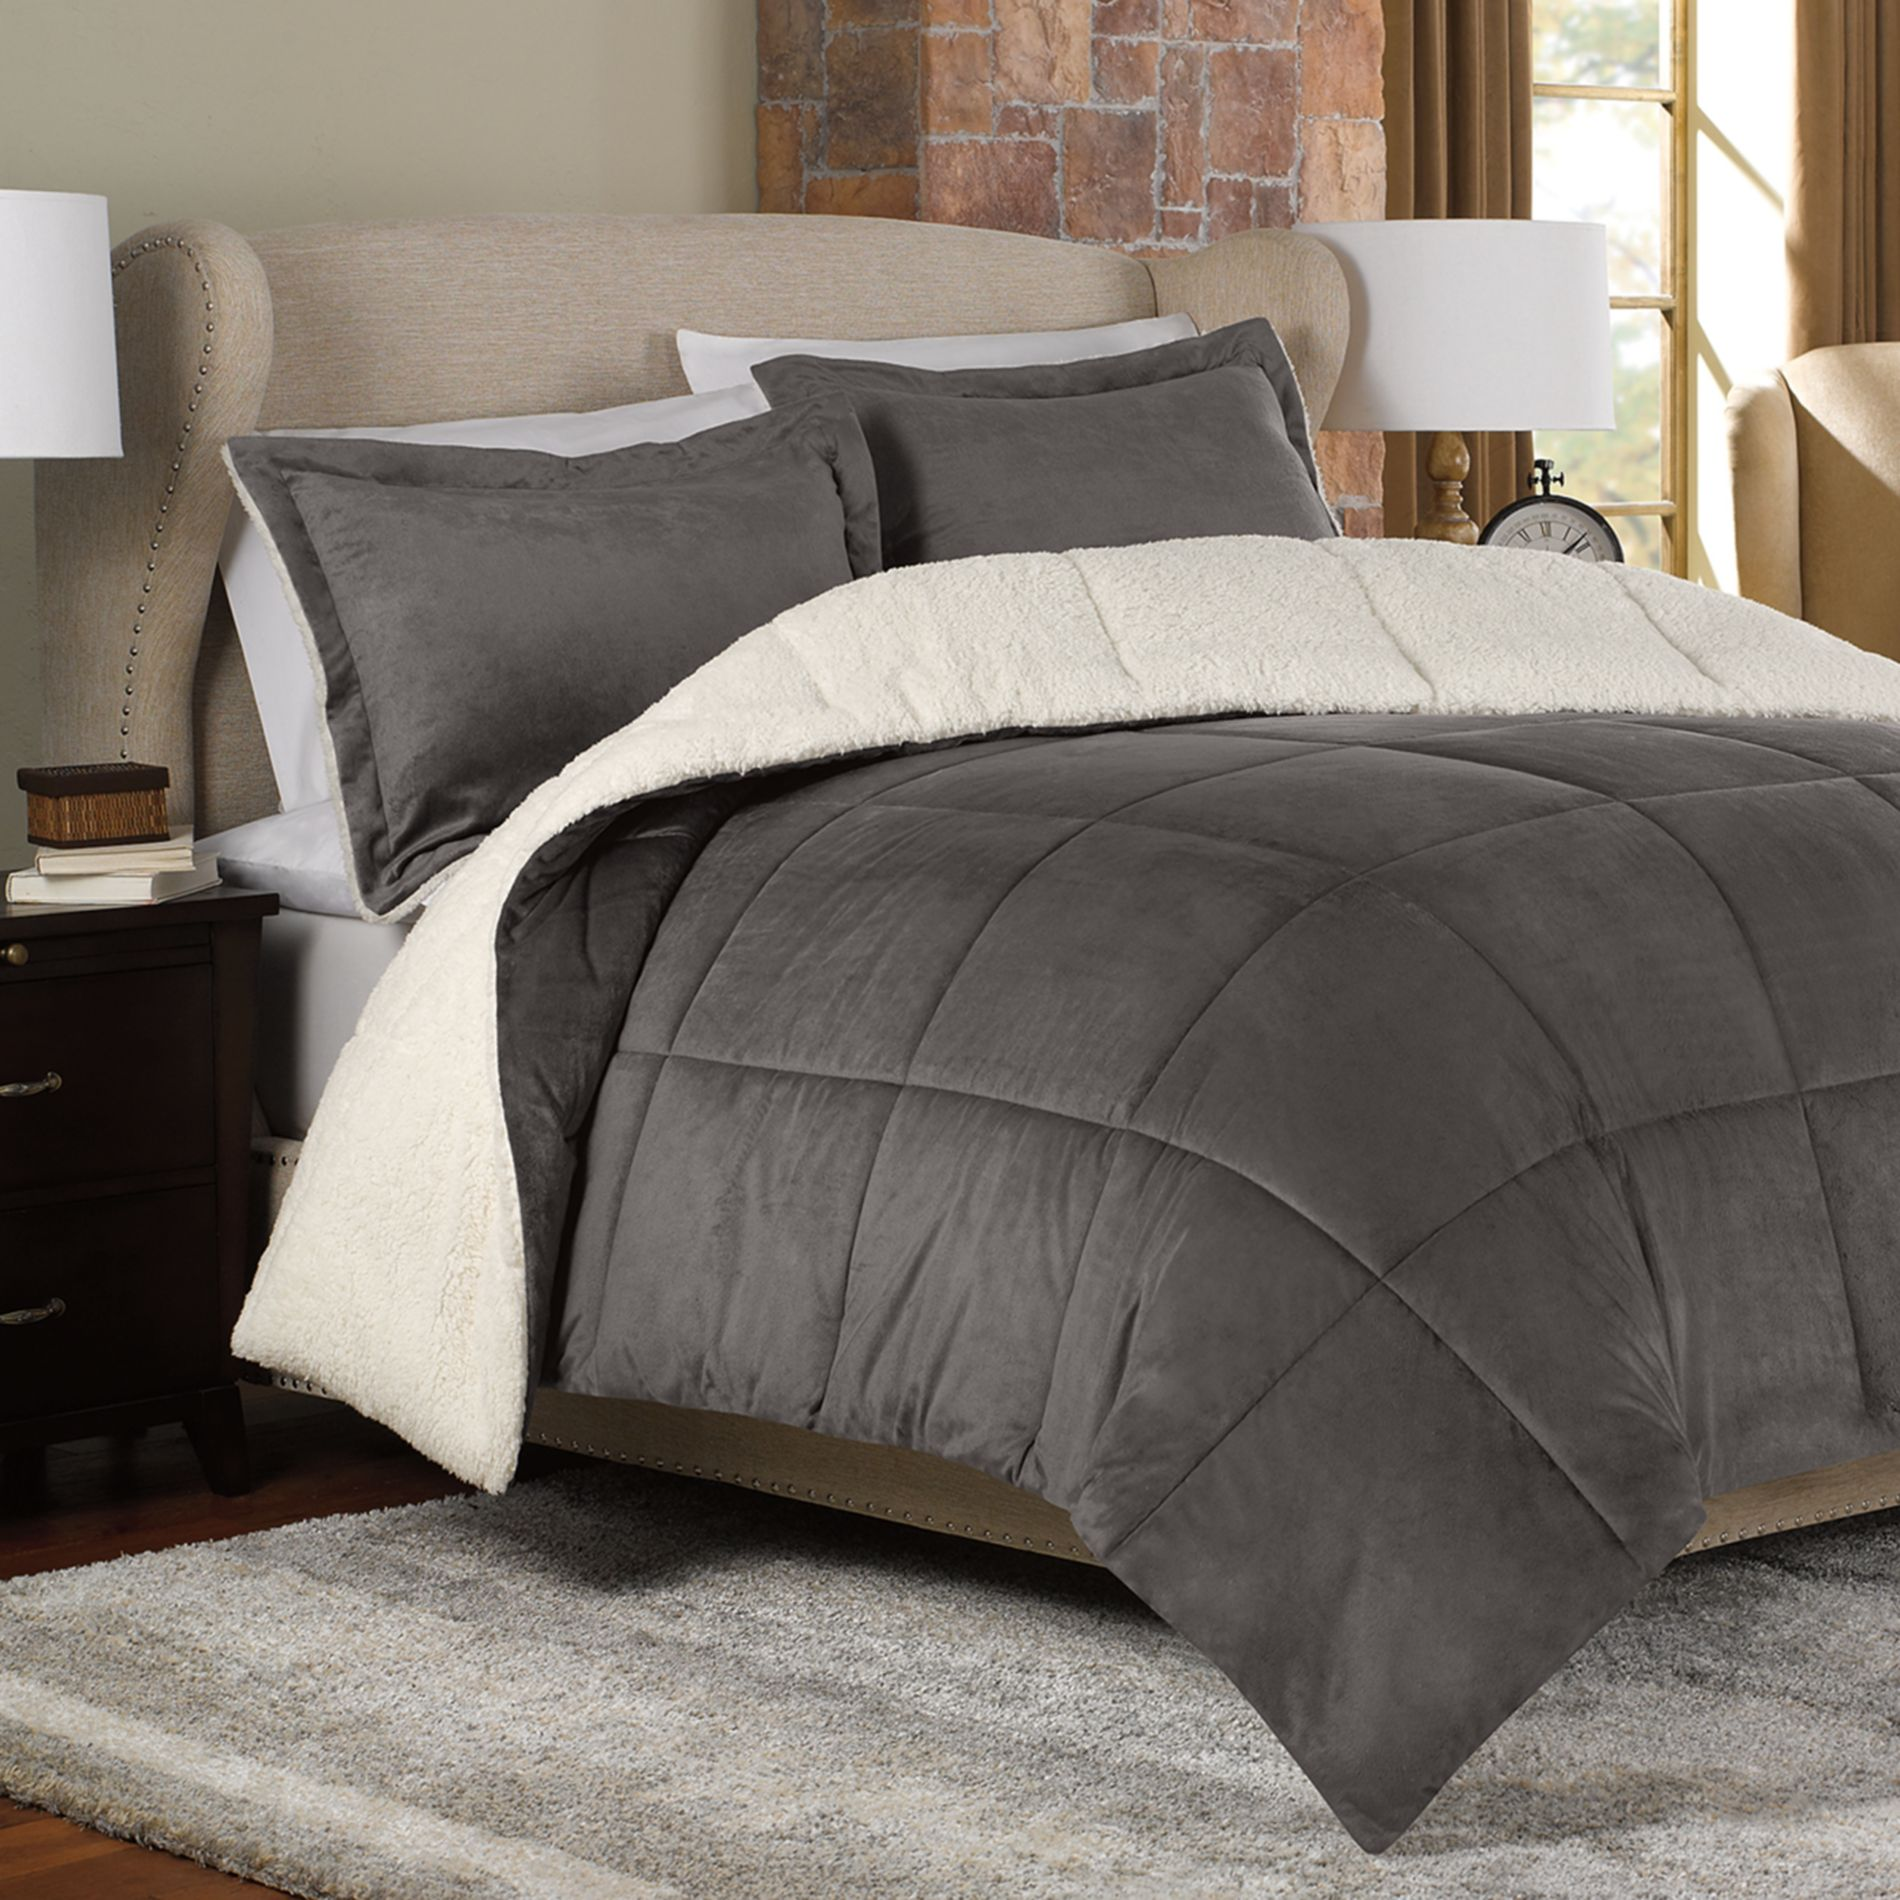 Seasons reversible down alternative from bed bath beyond - Bed bath and beyond bedroom furniture ...